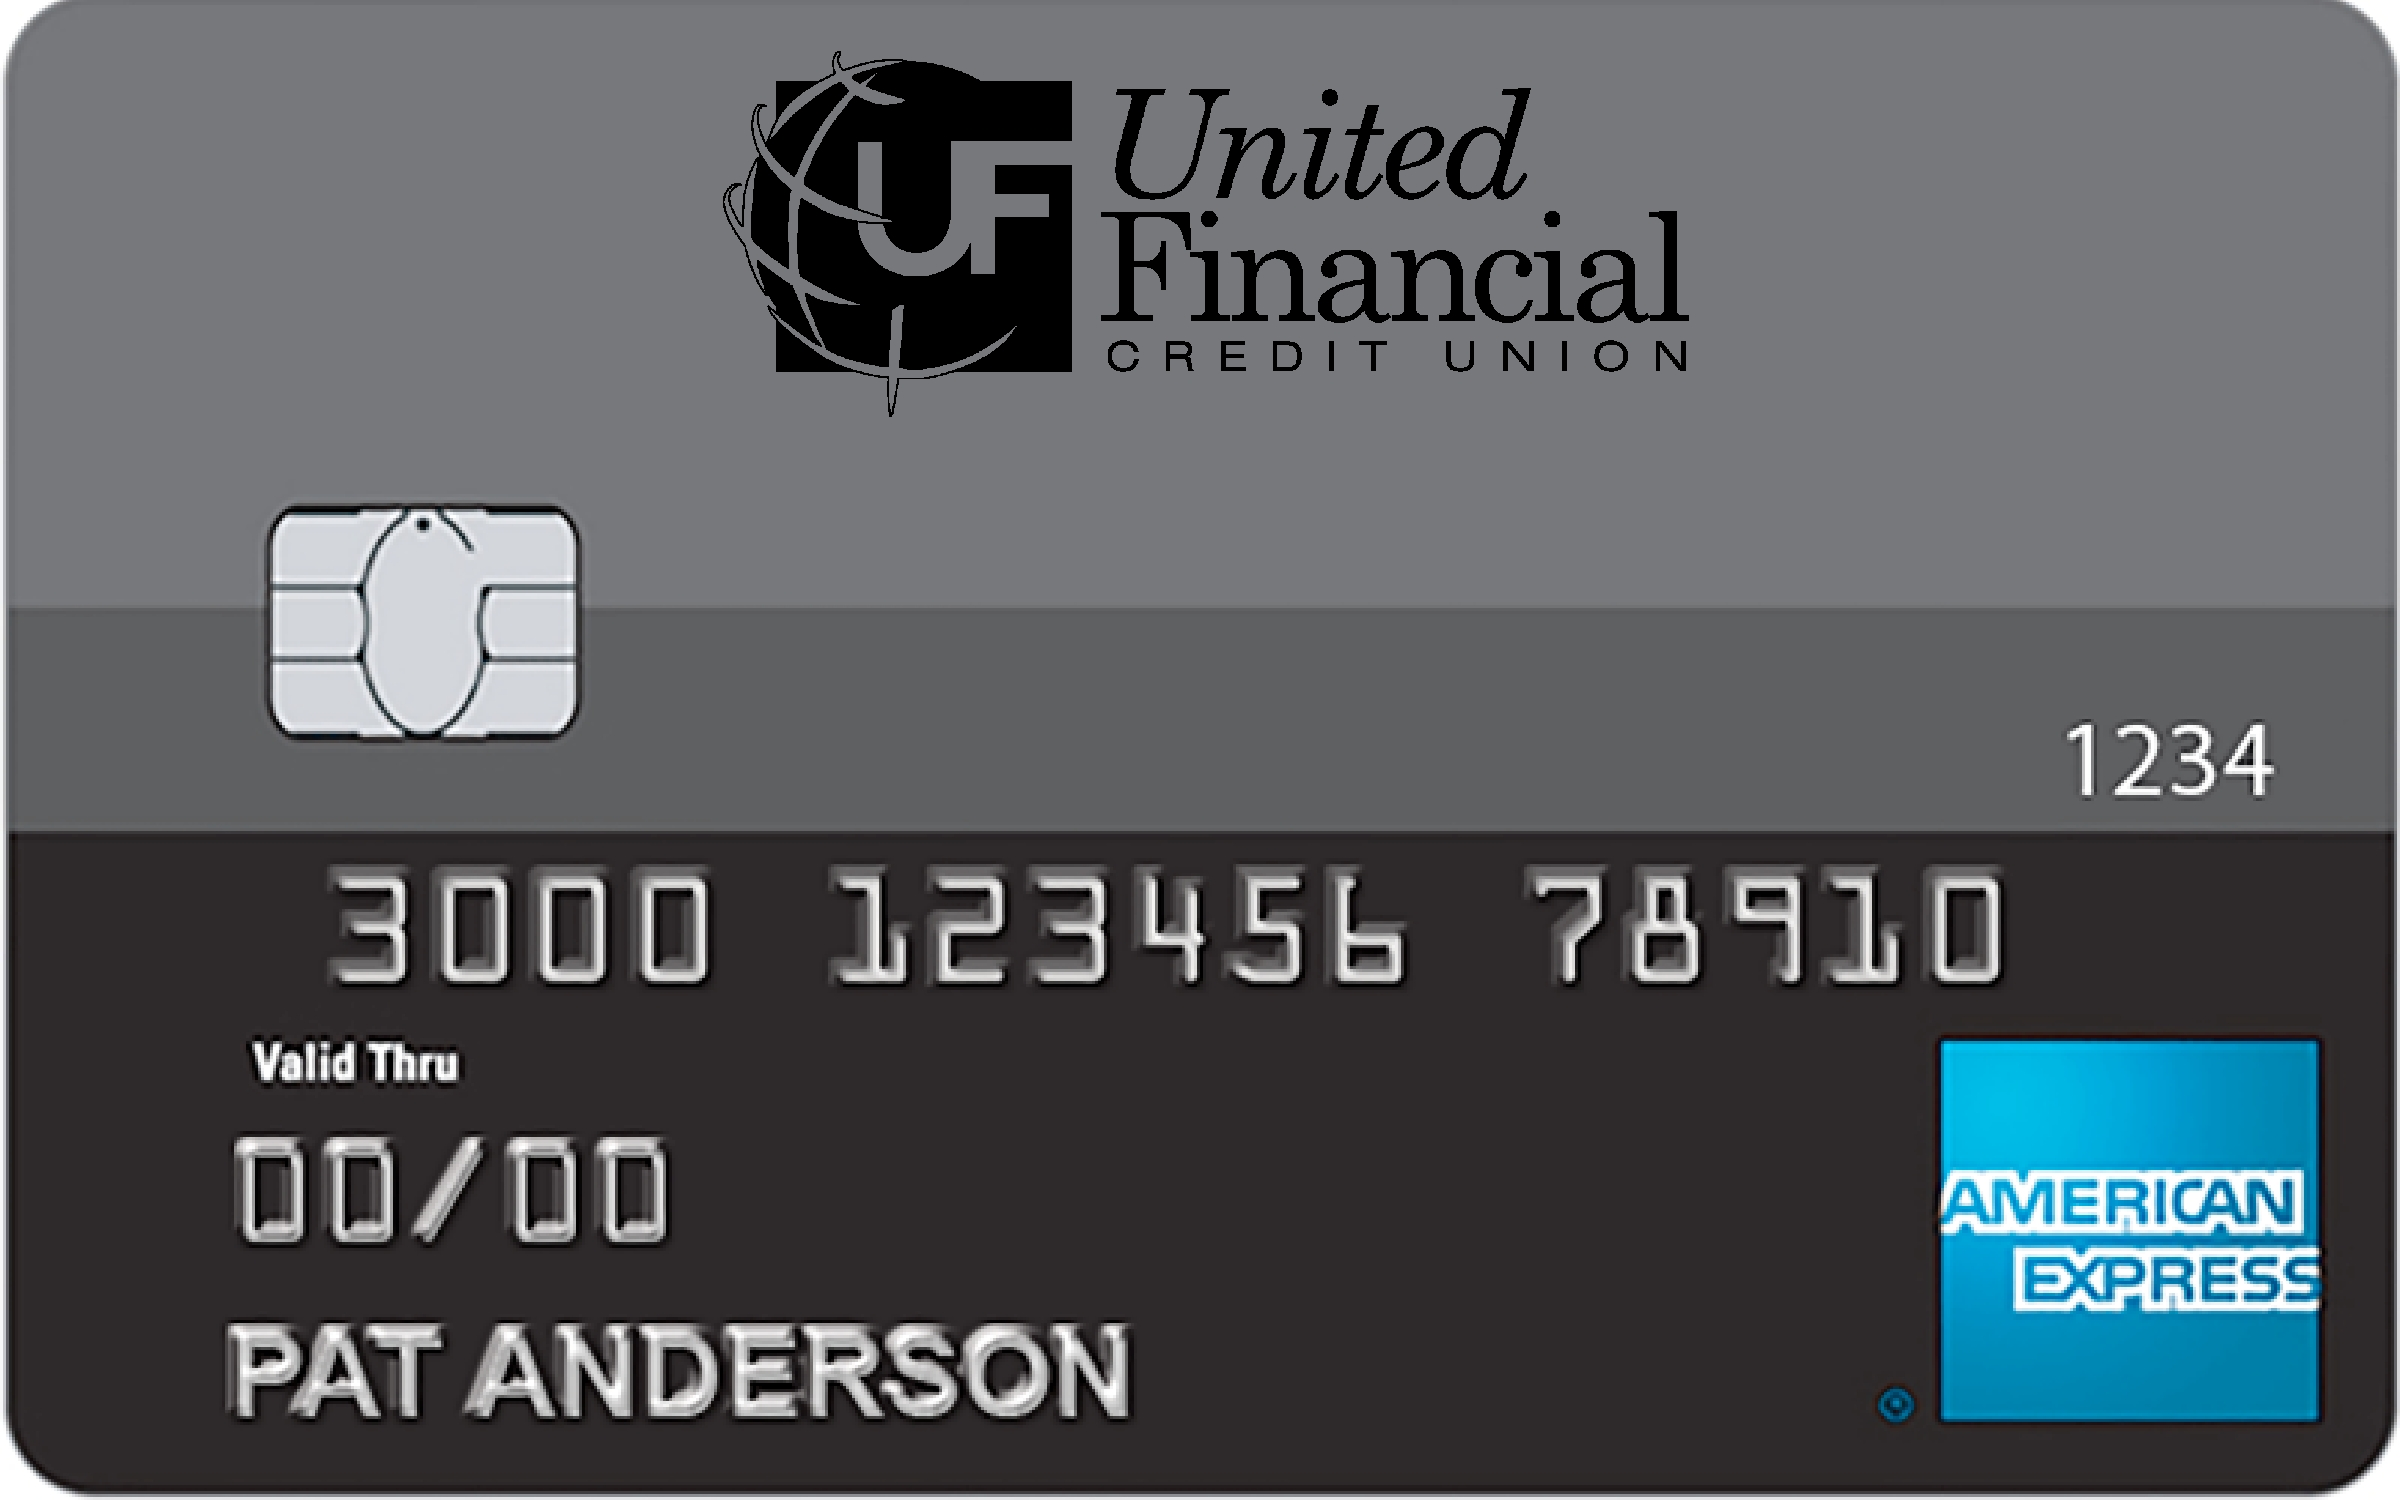 United Credit Card Customer Service Elan Consumer Credit Card United Financial Credit Union